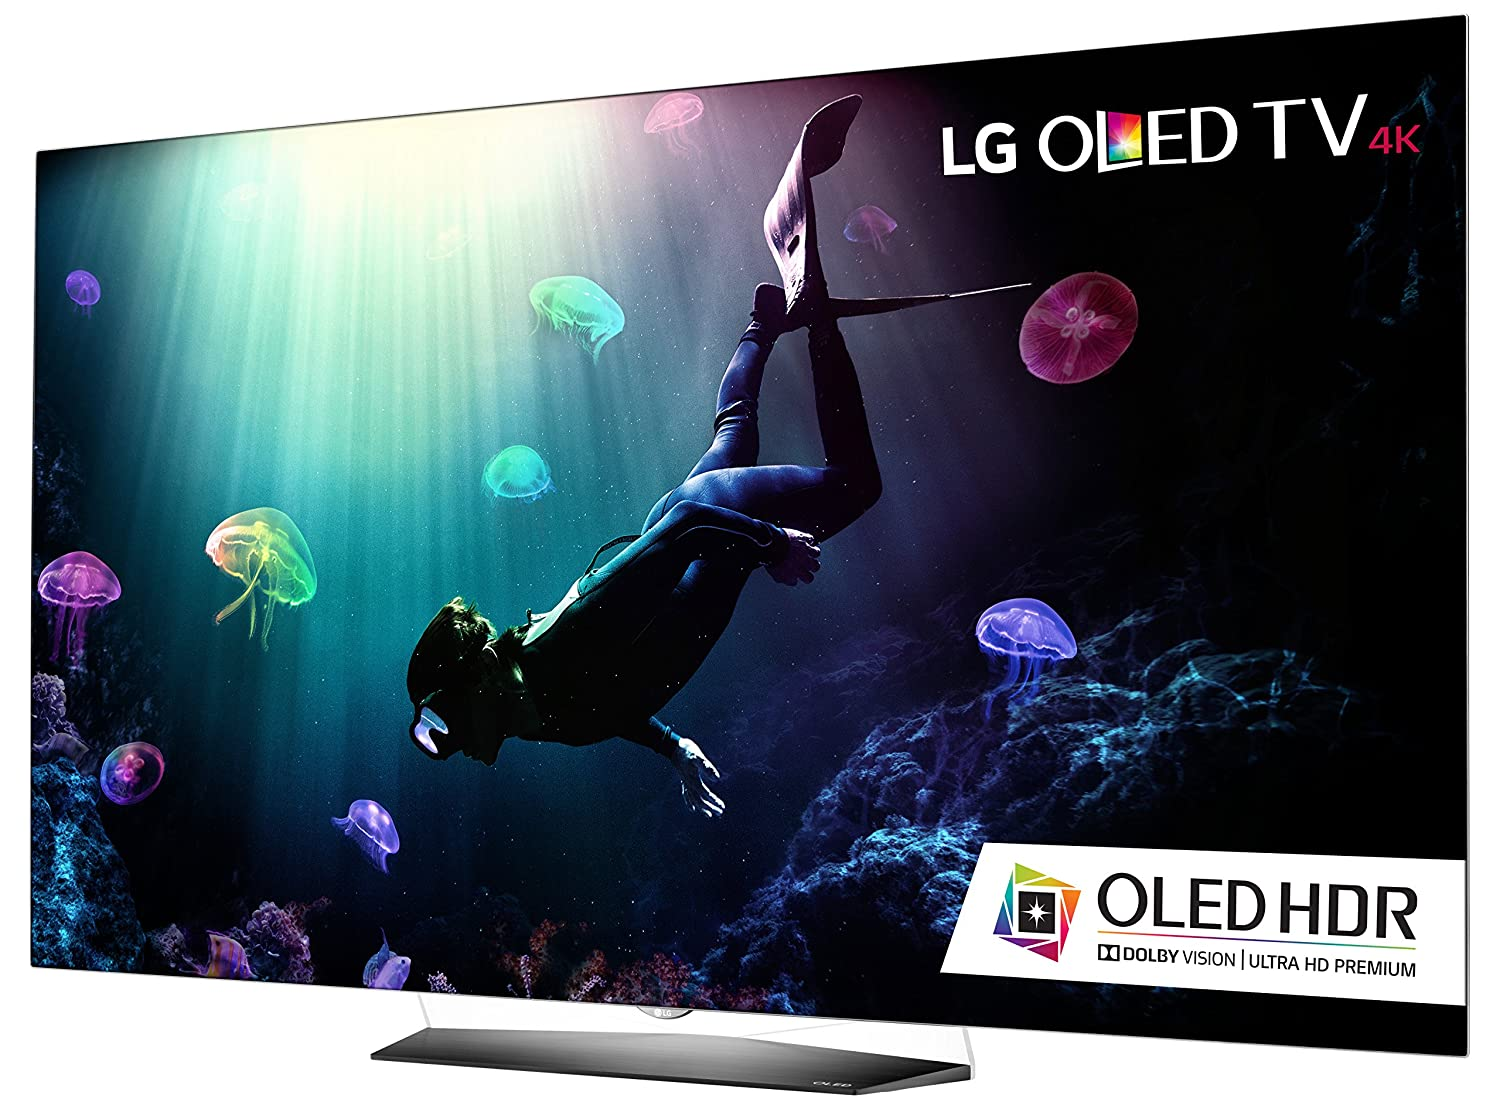 LG Electronics OLED65B6P Flat 65-Inch 4K Ultra HD Smart OLED TV (2016 Model)